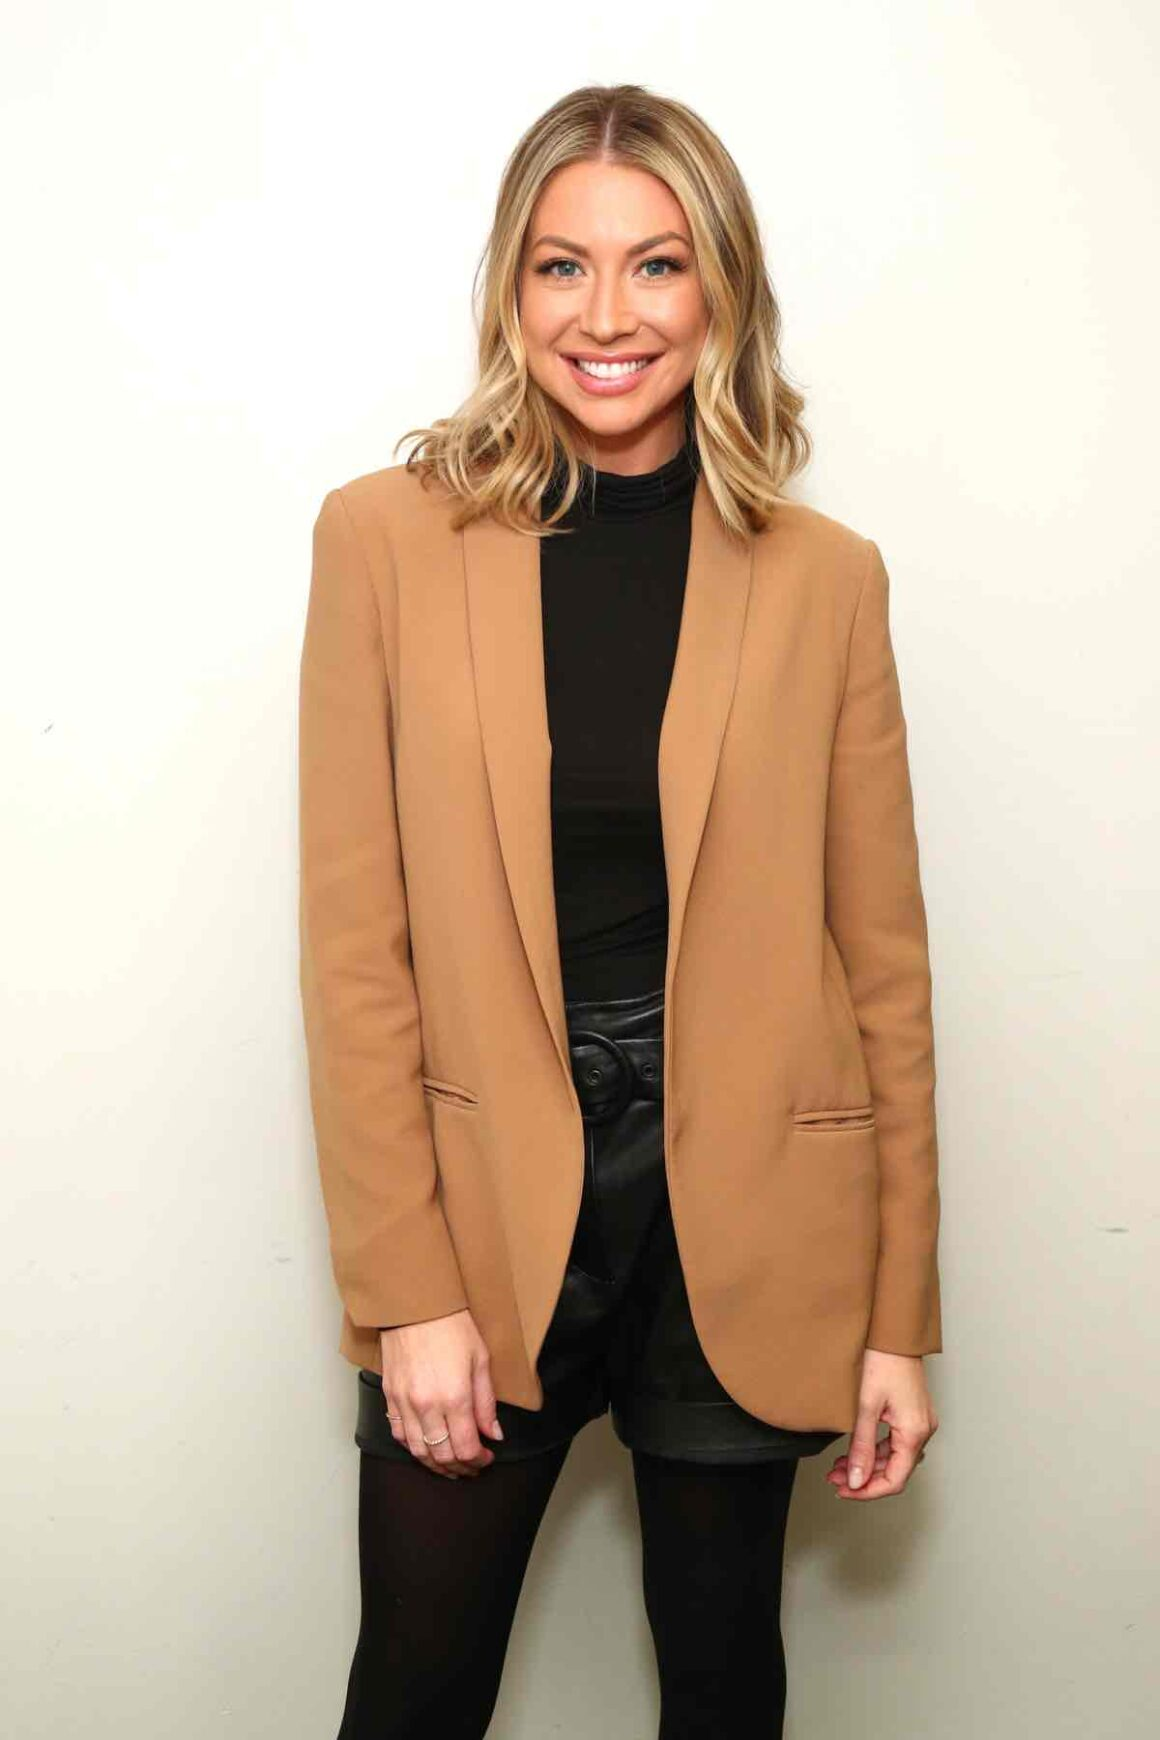 Stassi Schroeder attends the 2019 Glamour Women Of The Year Summit